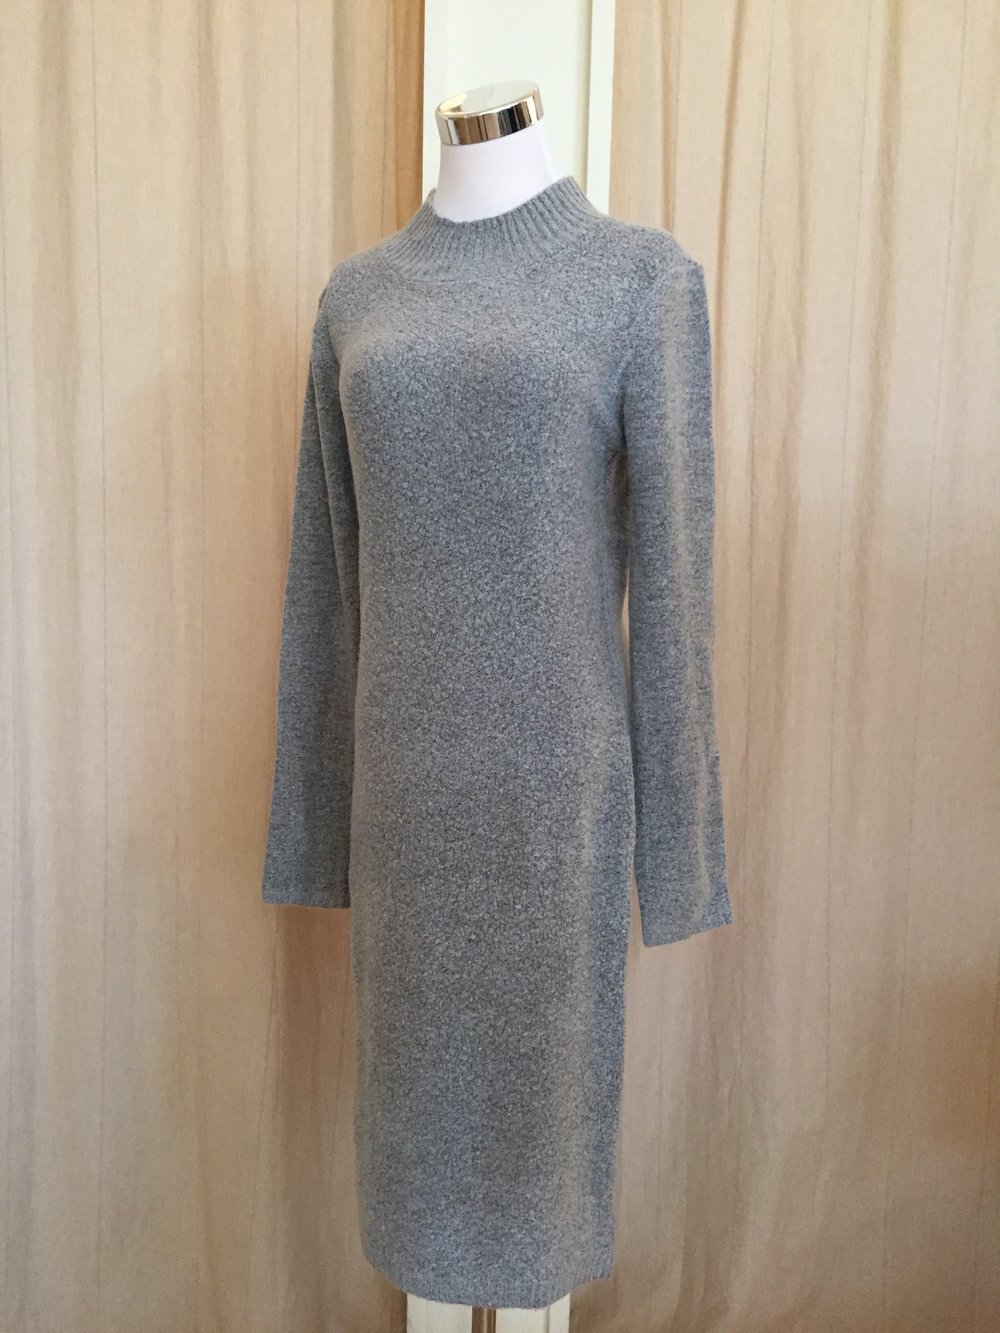 Mock Neck Sweater Dress ($42)